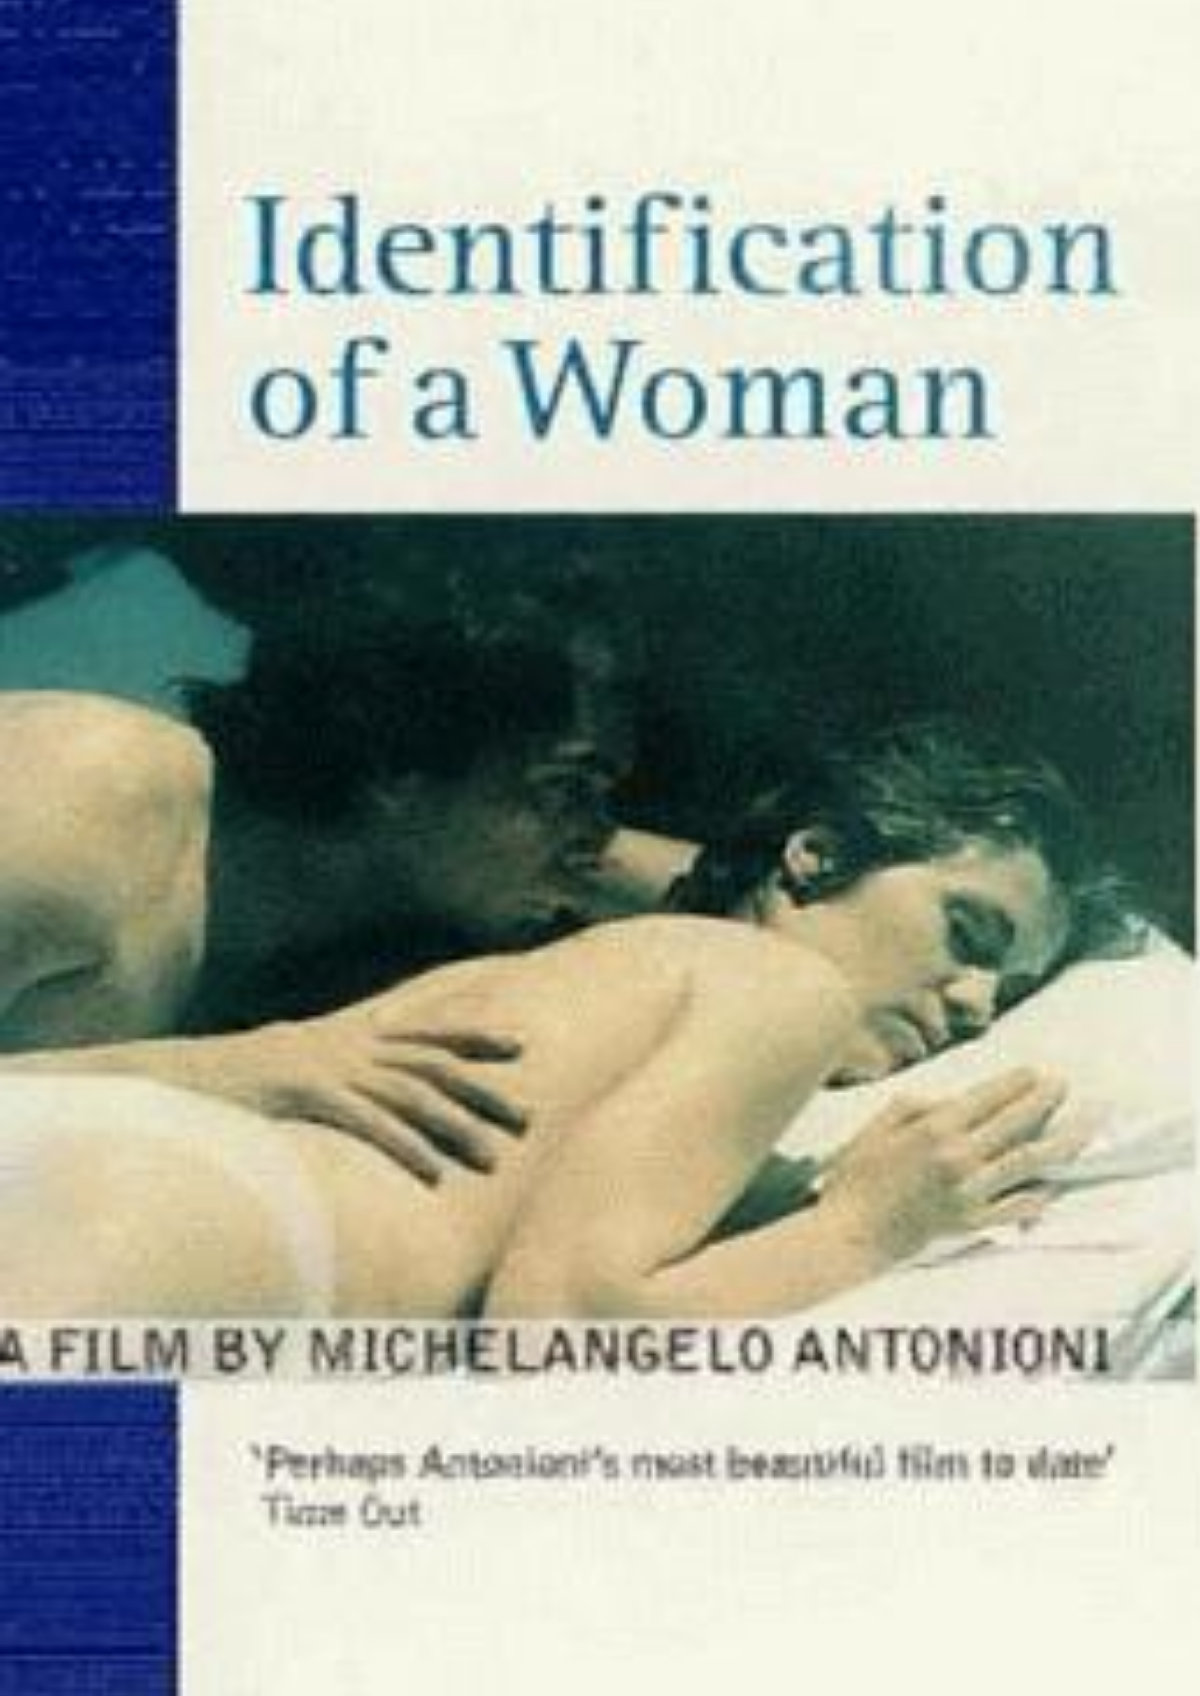 'Identification Of A Woman' movie poster